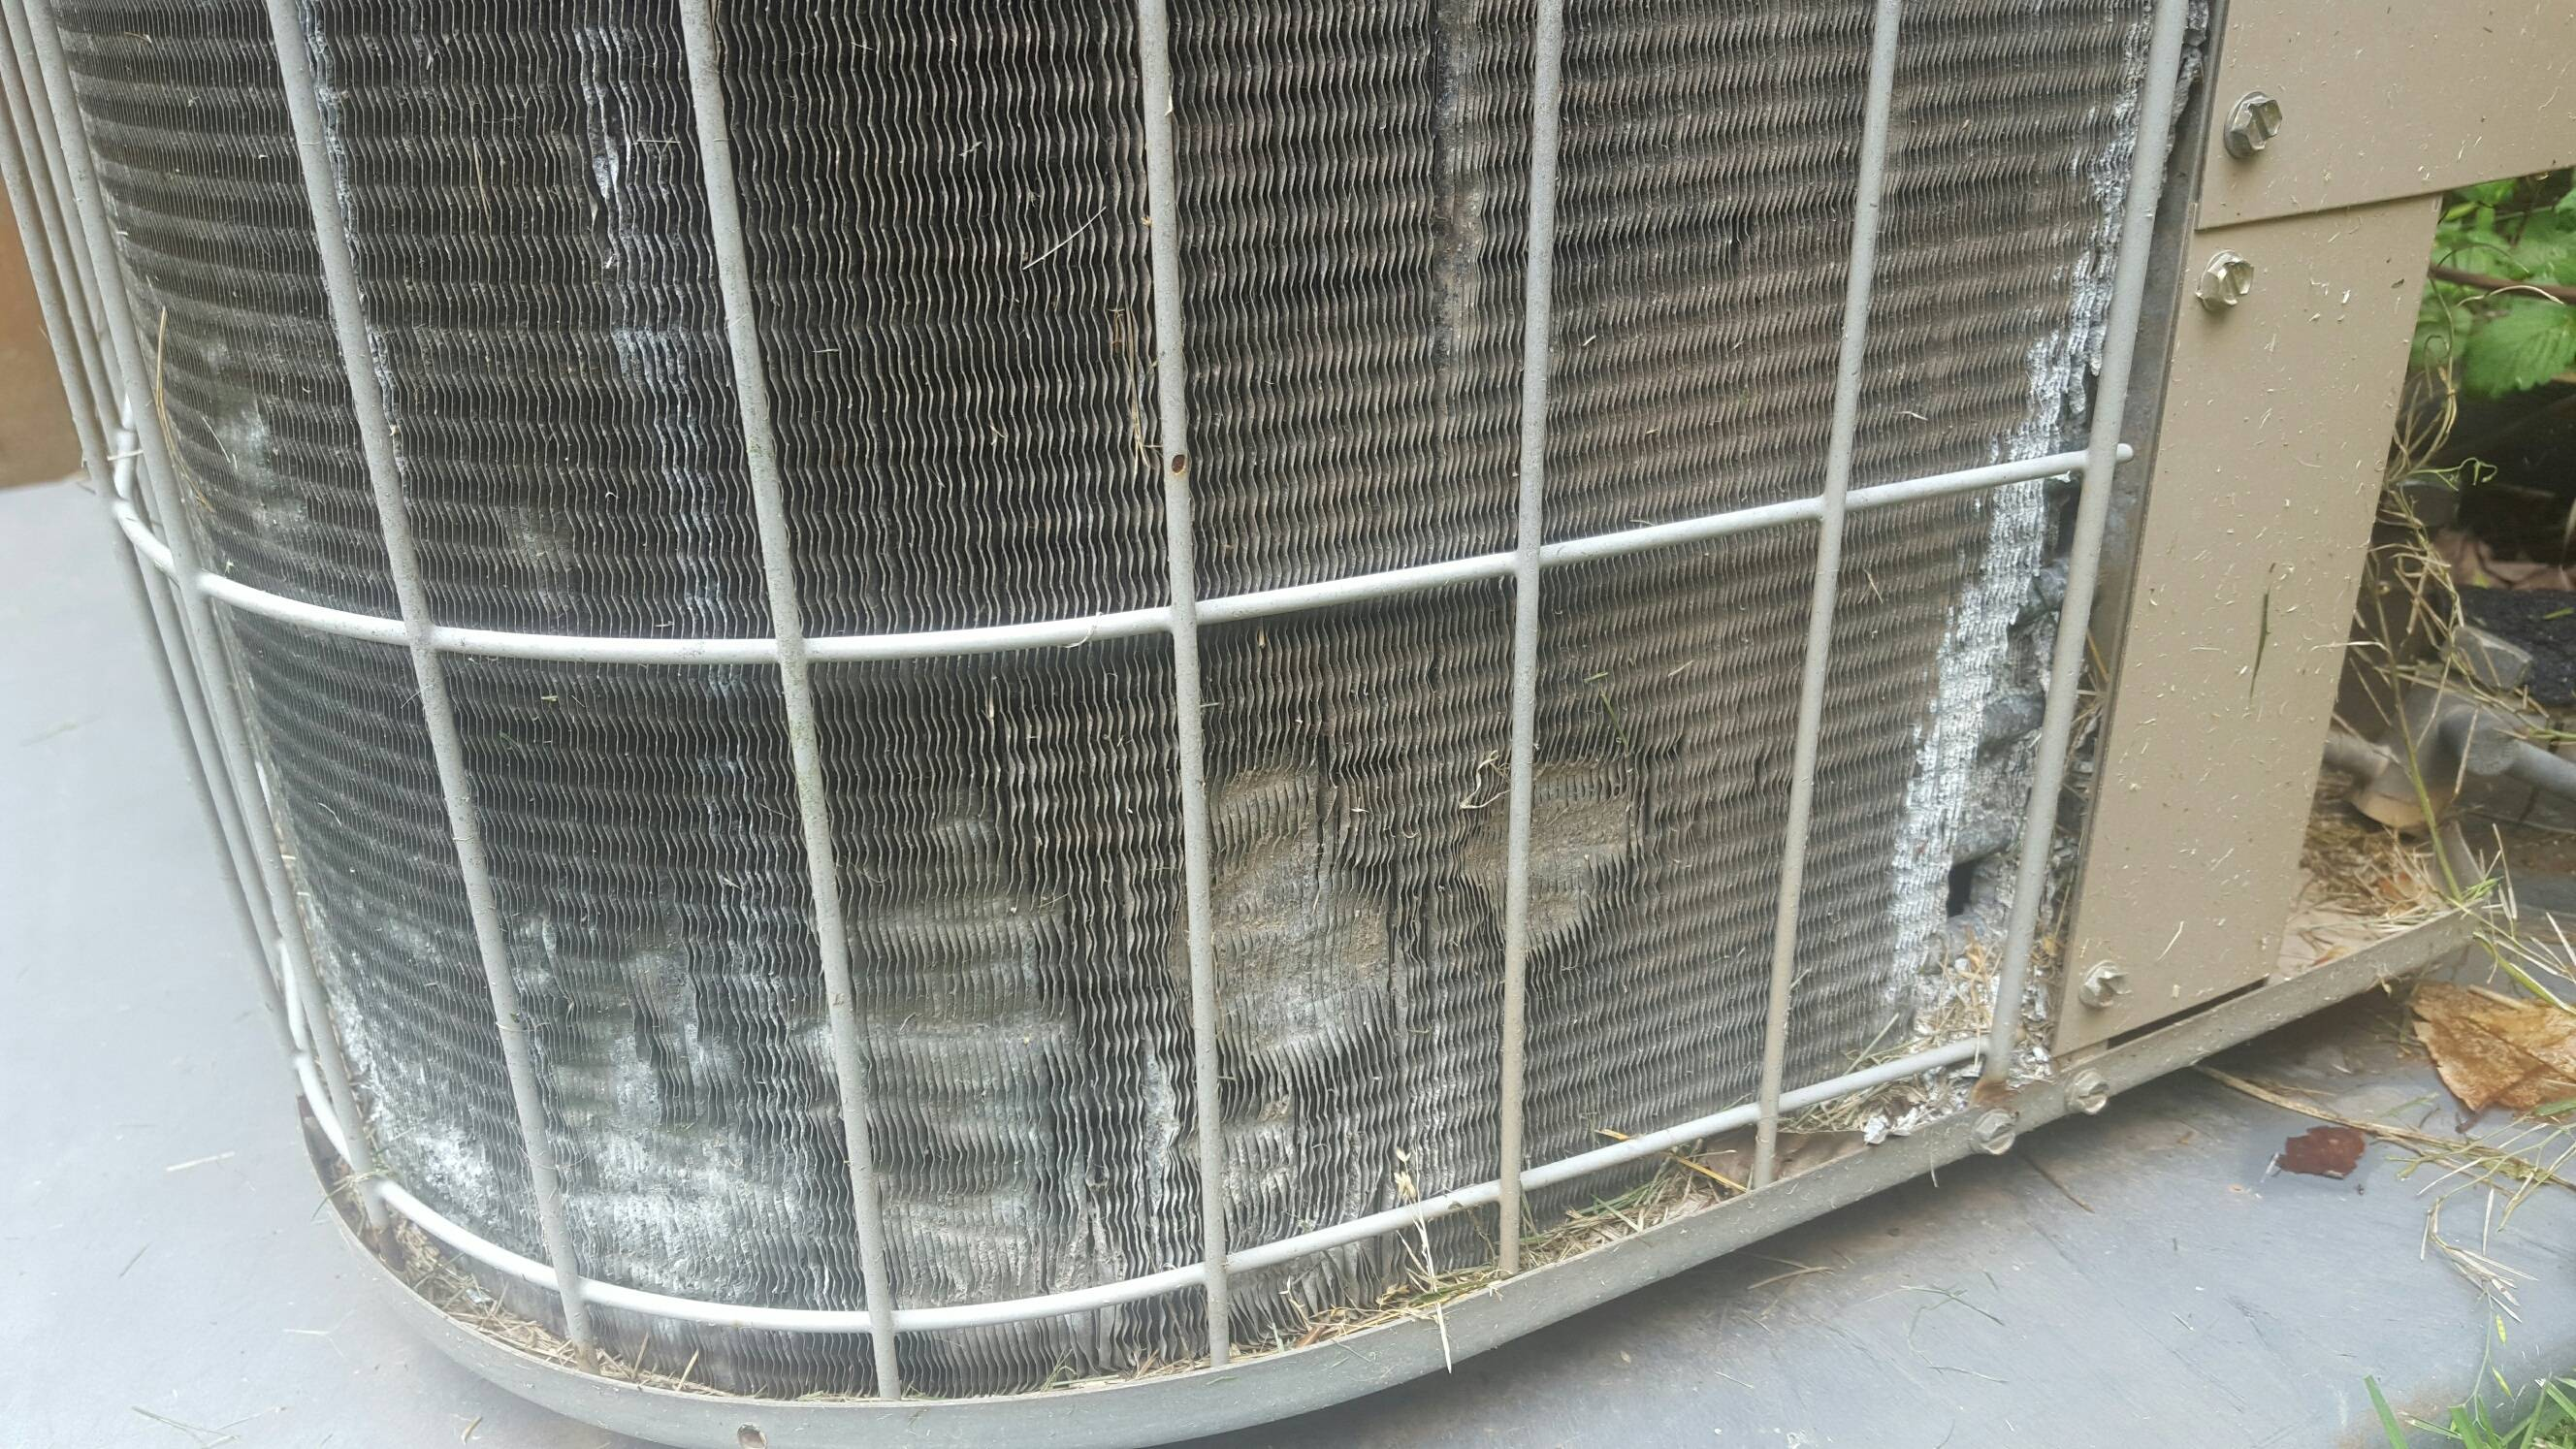 Know About The Causes Of Ac Failure